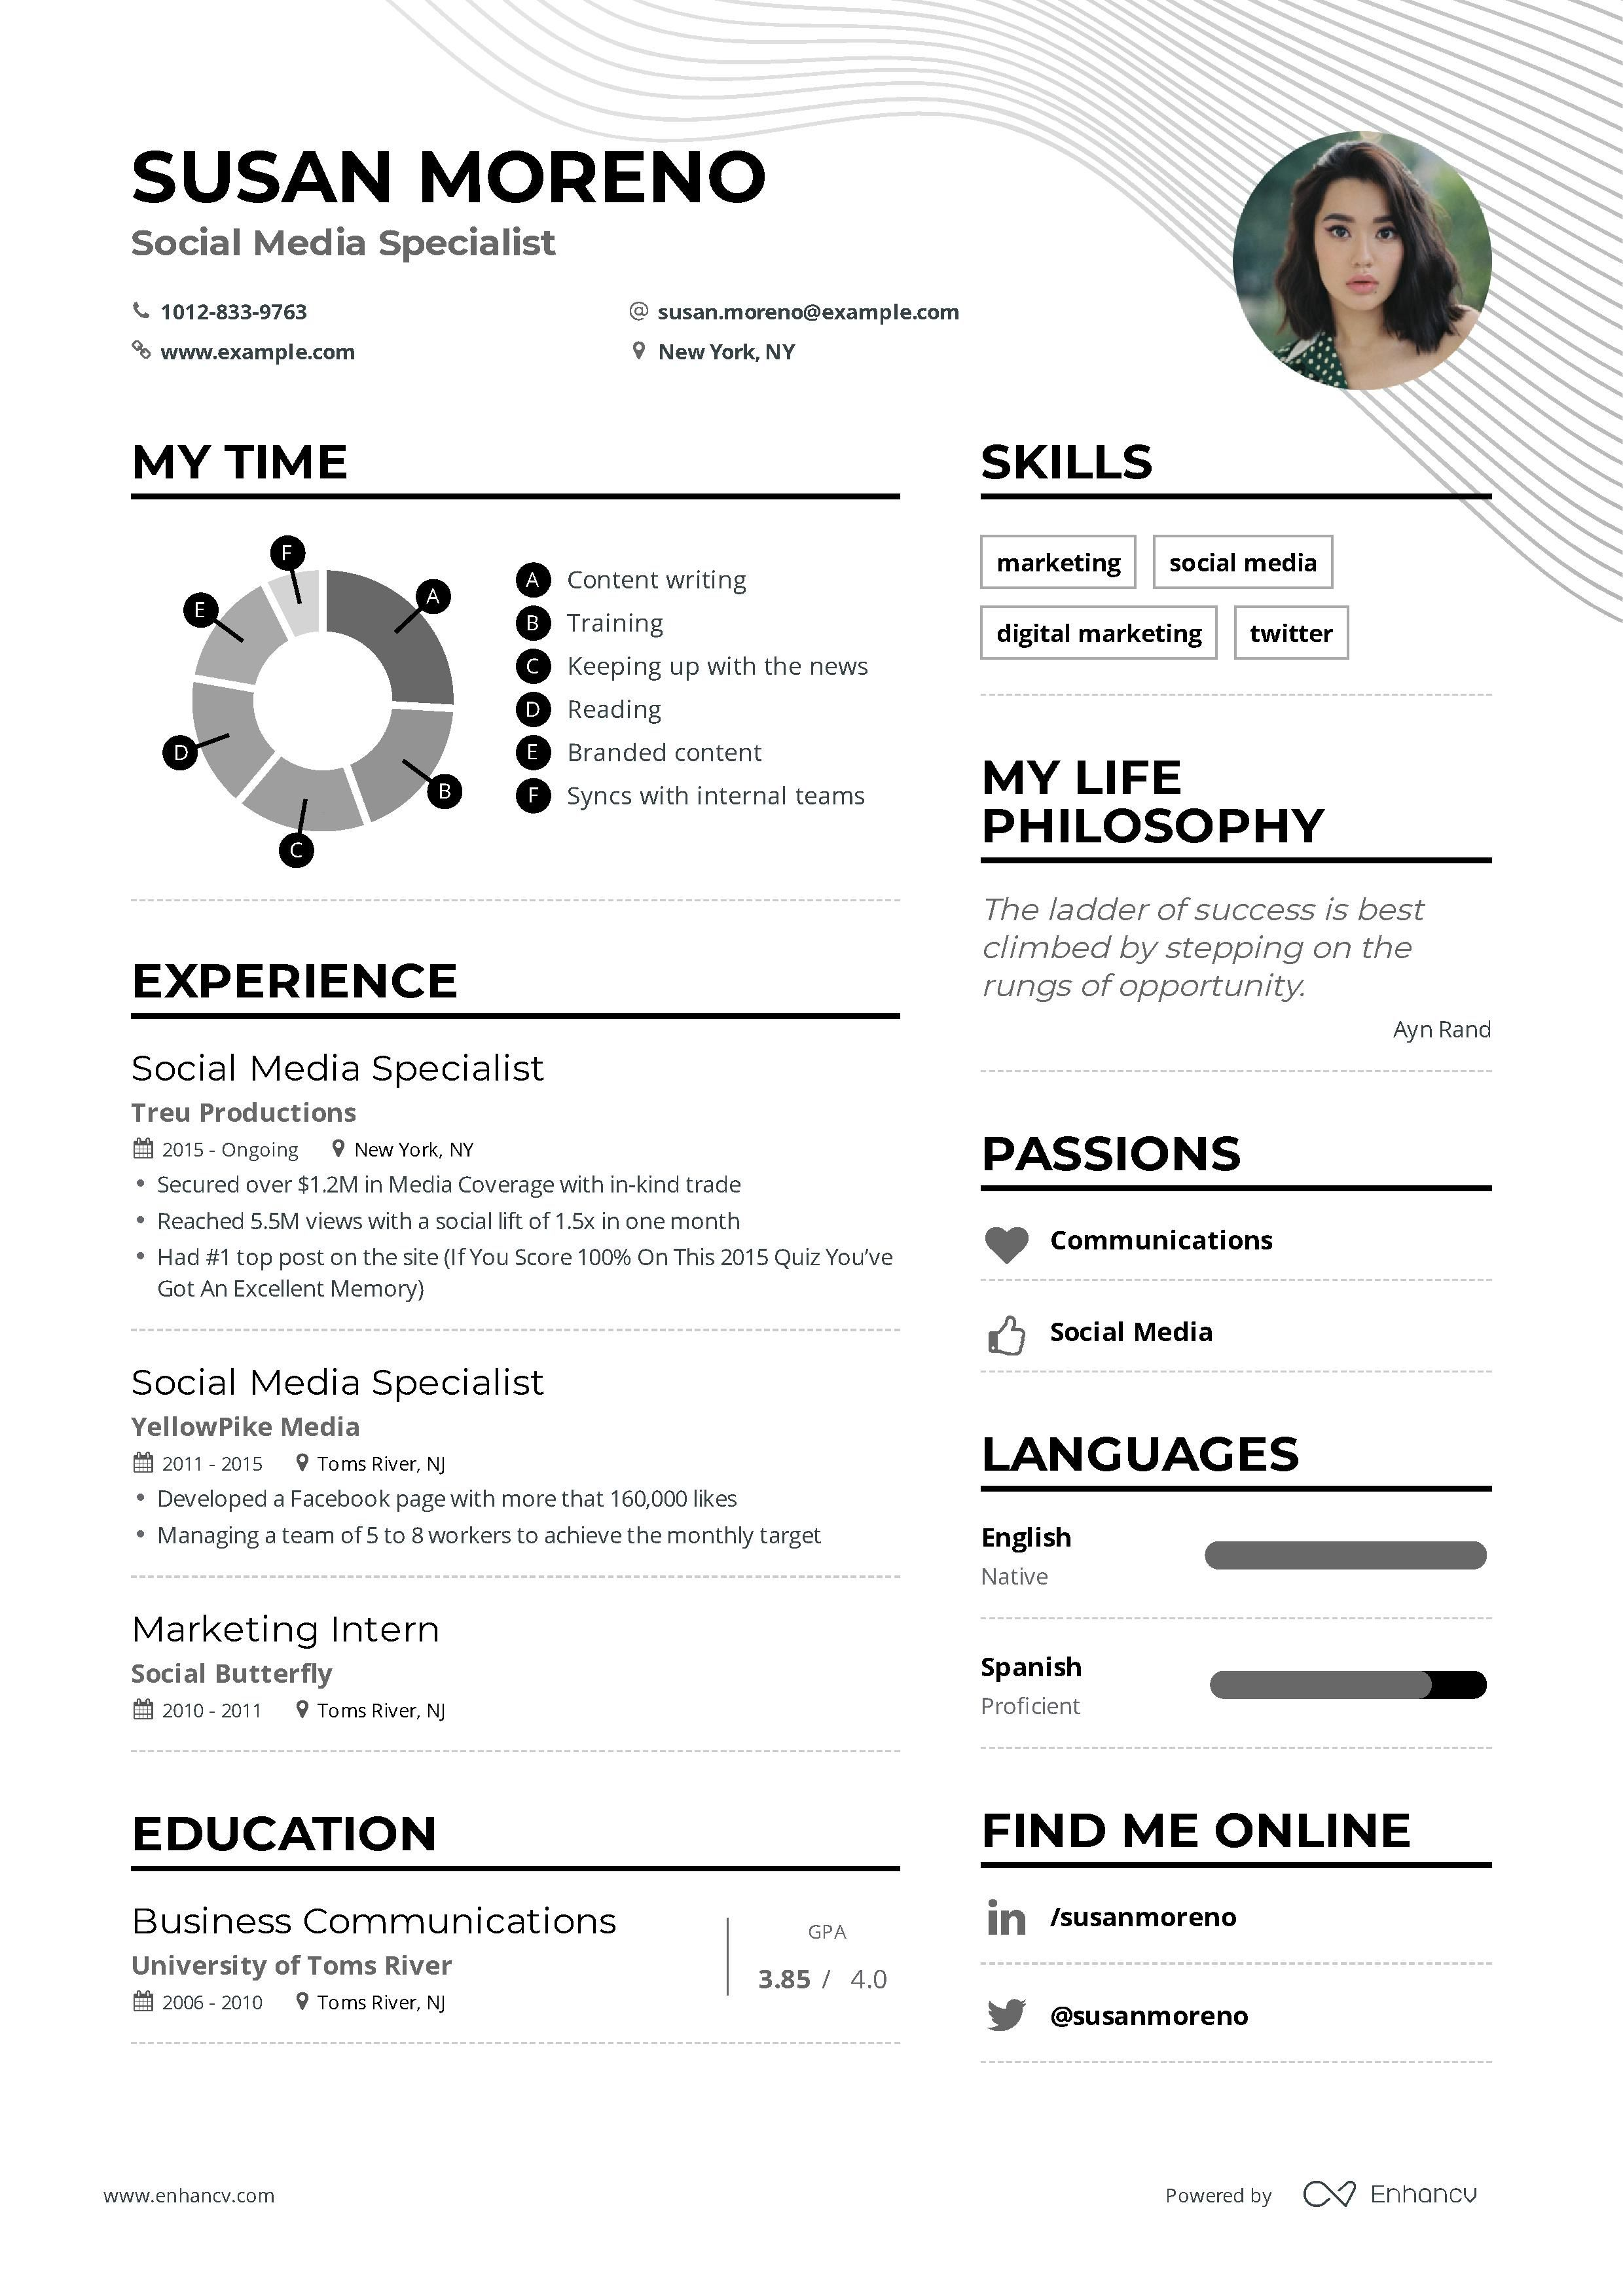 Download Social Media Specialist Resume Example For 2020 With